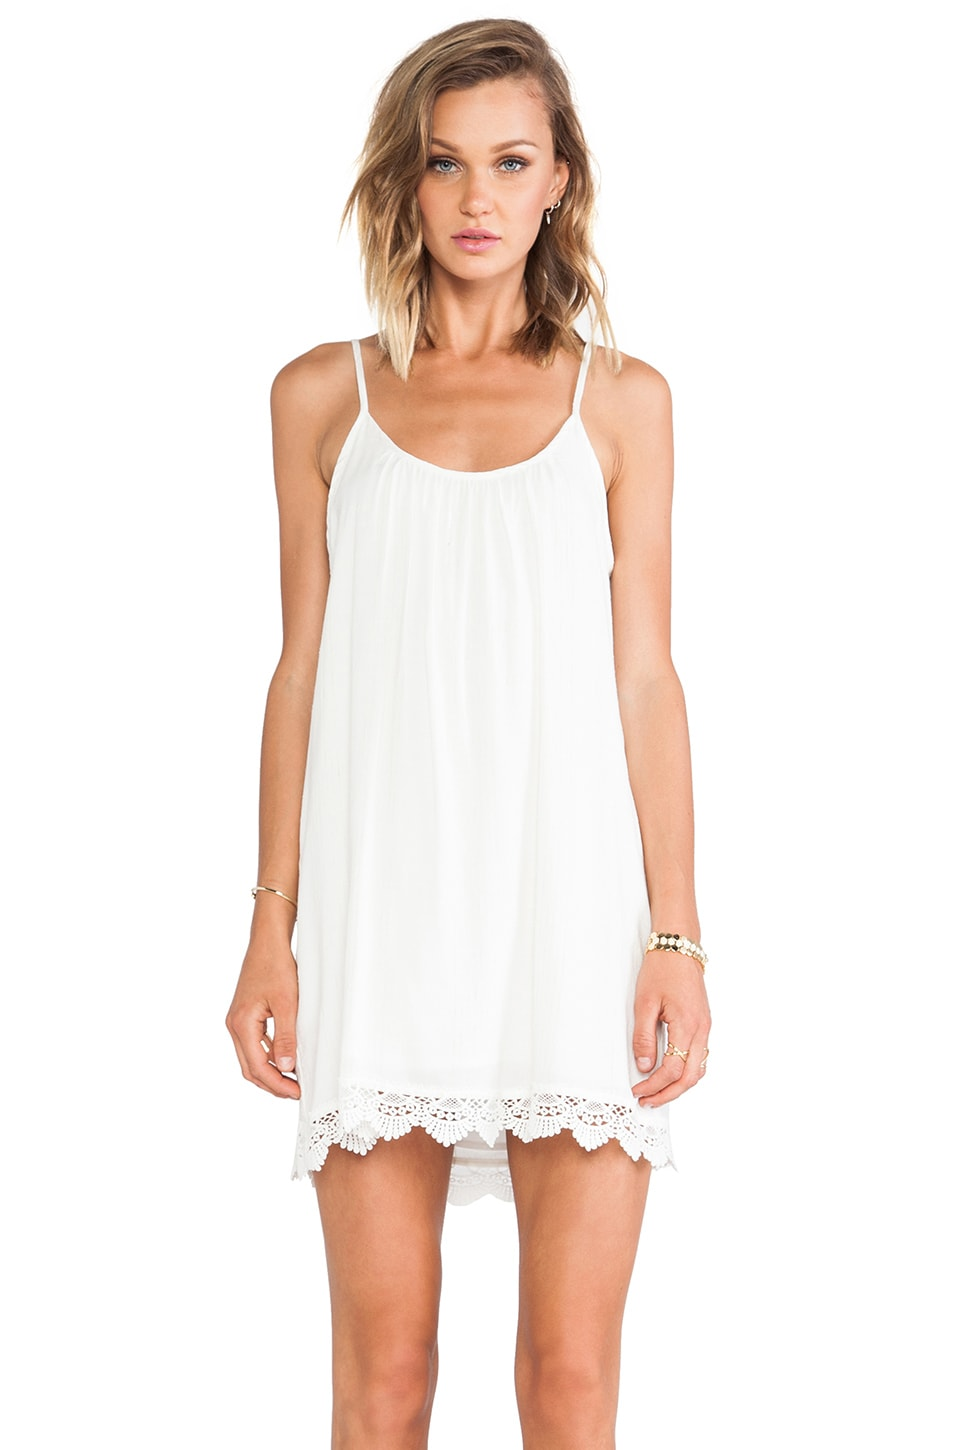 LIV Cami Scoop Dress in Cream